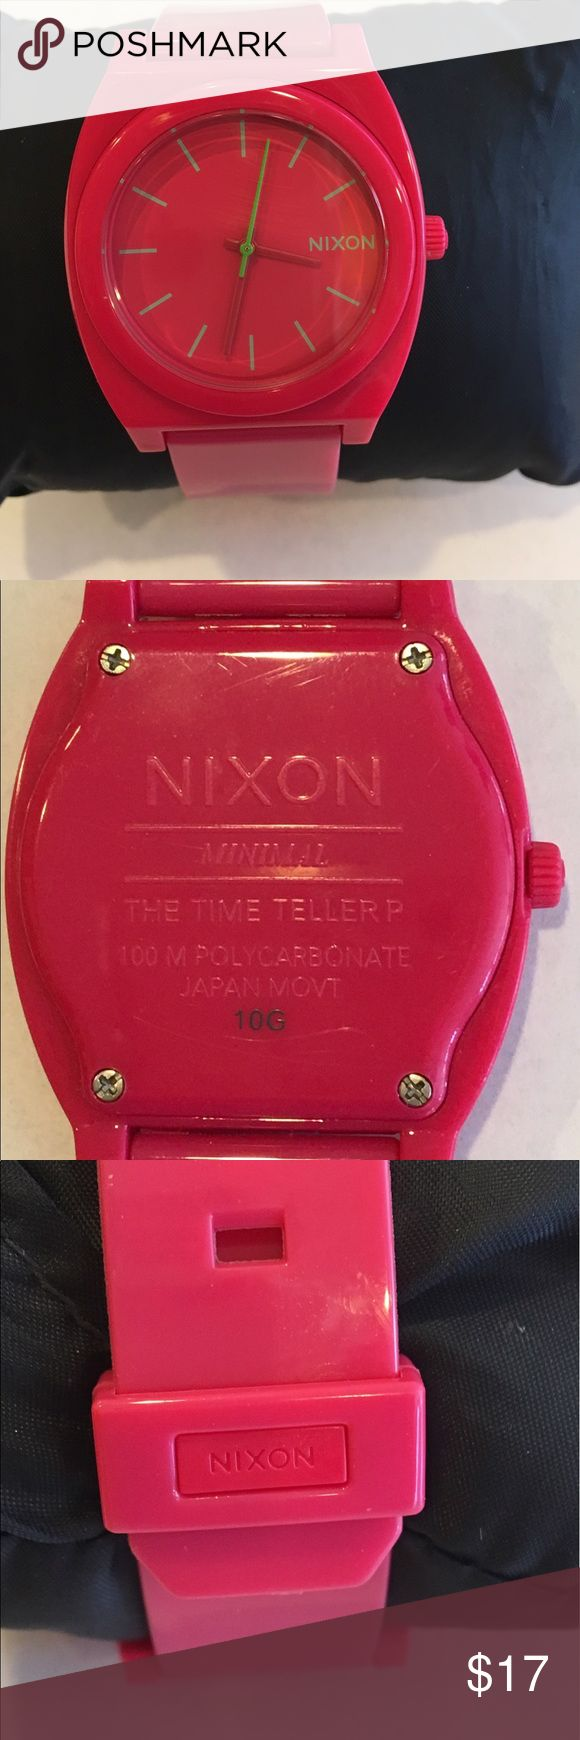 New Battery! Nixon Polycarbonate Hot Pink  The Time